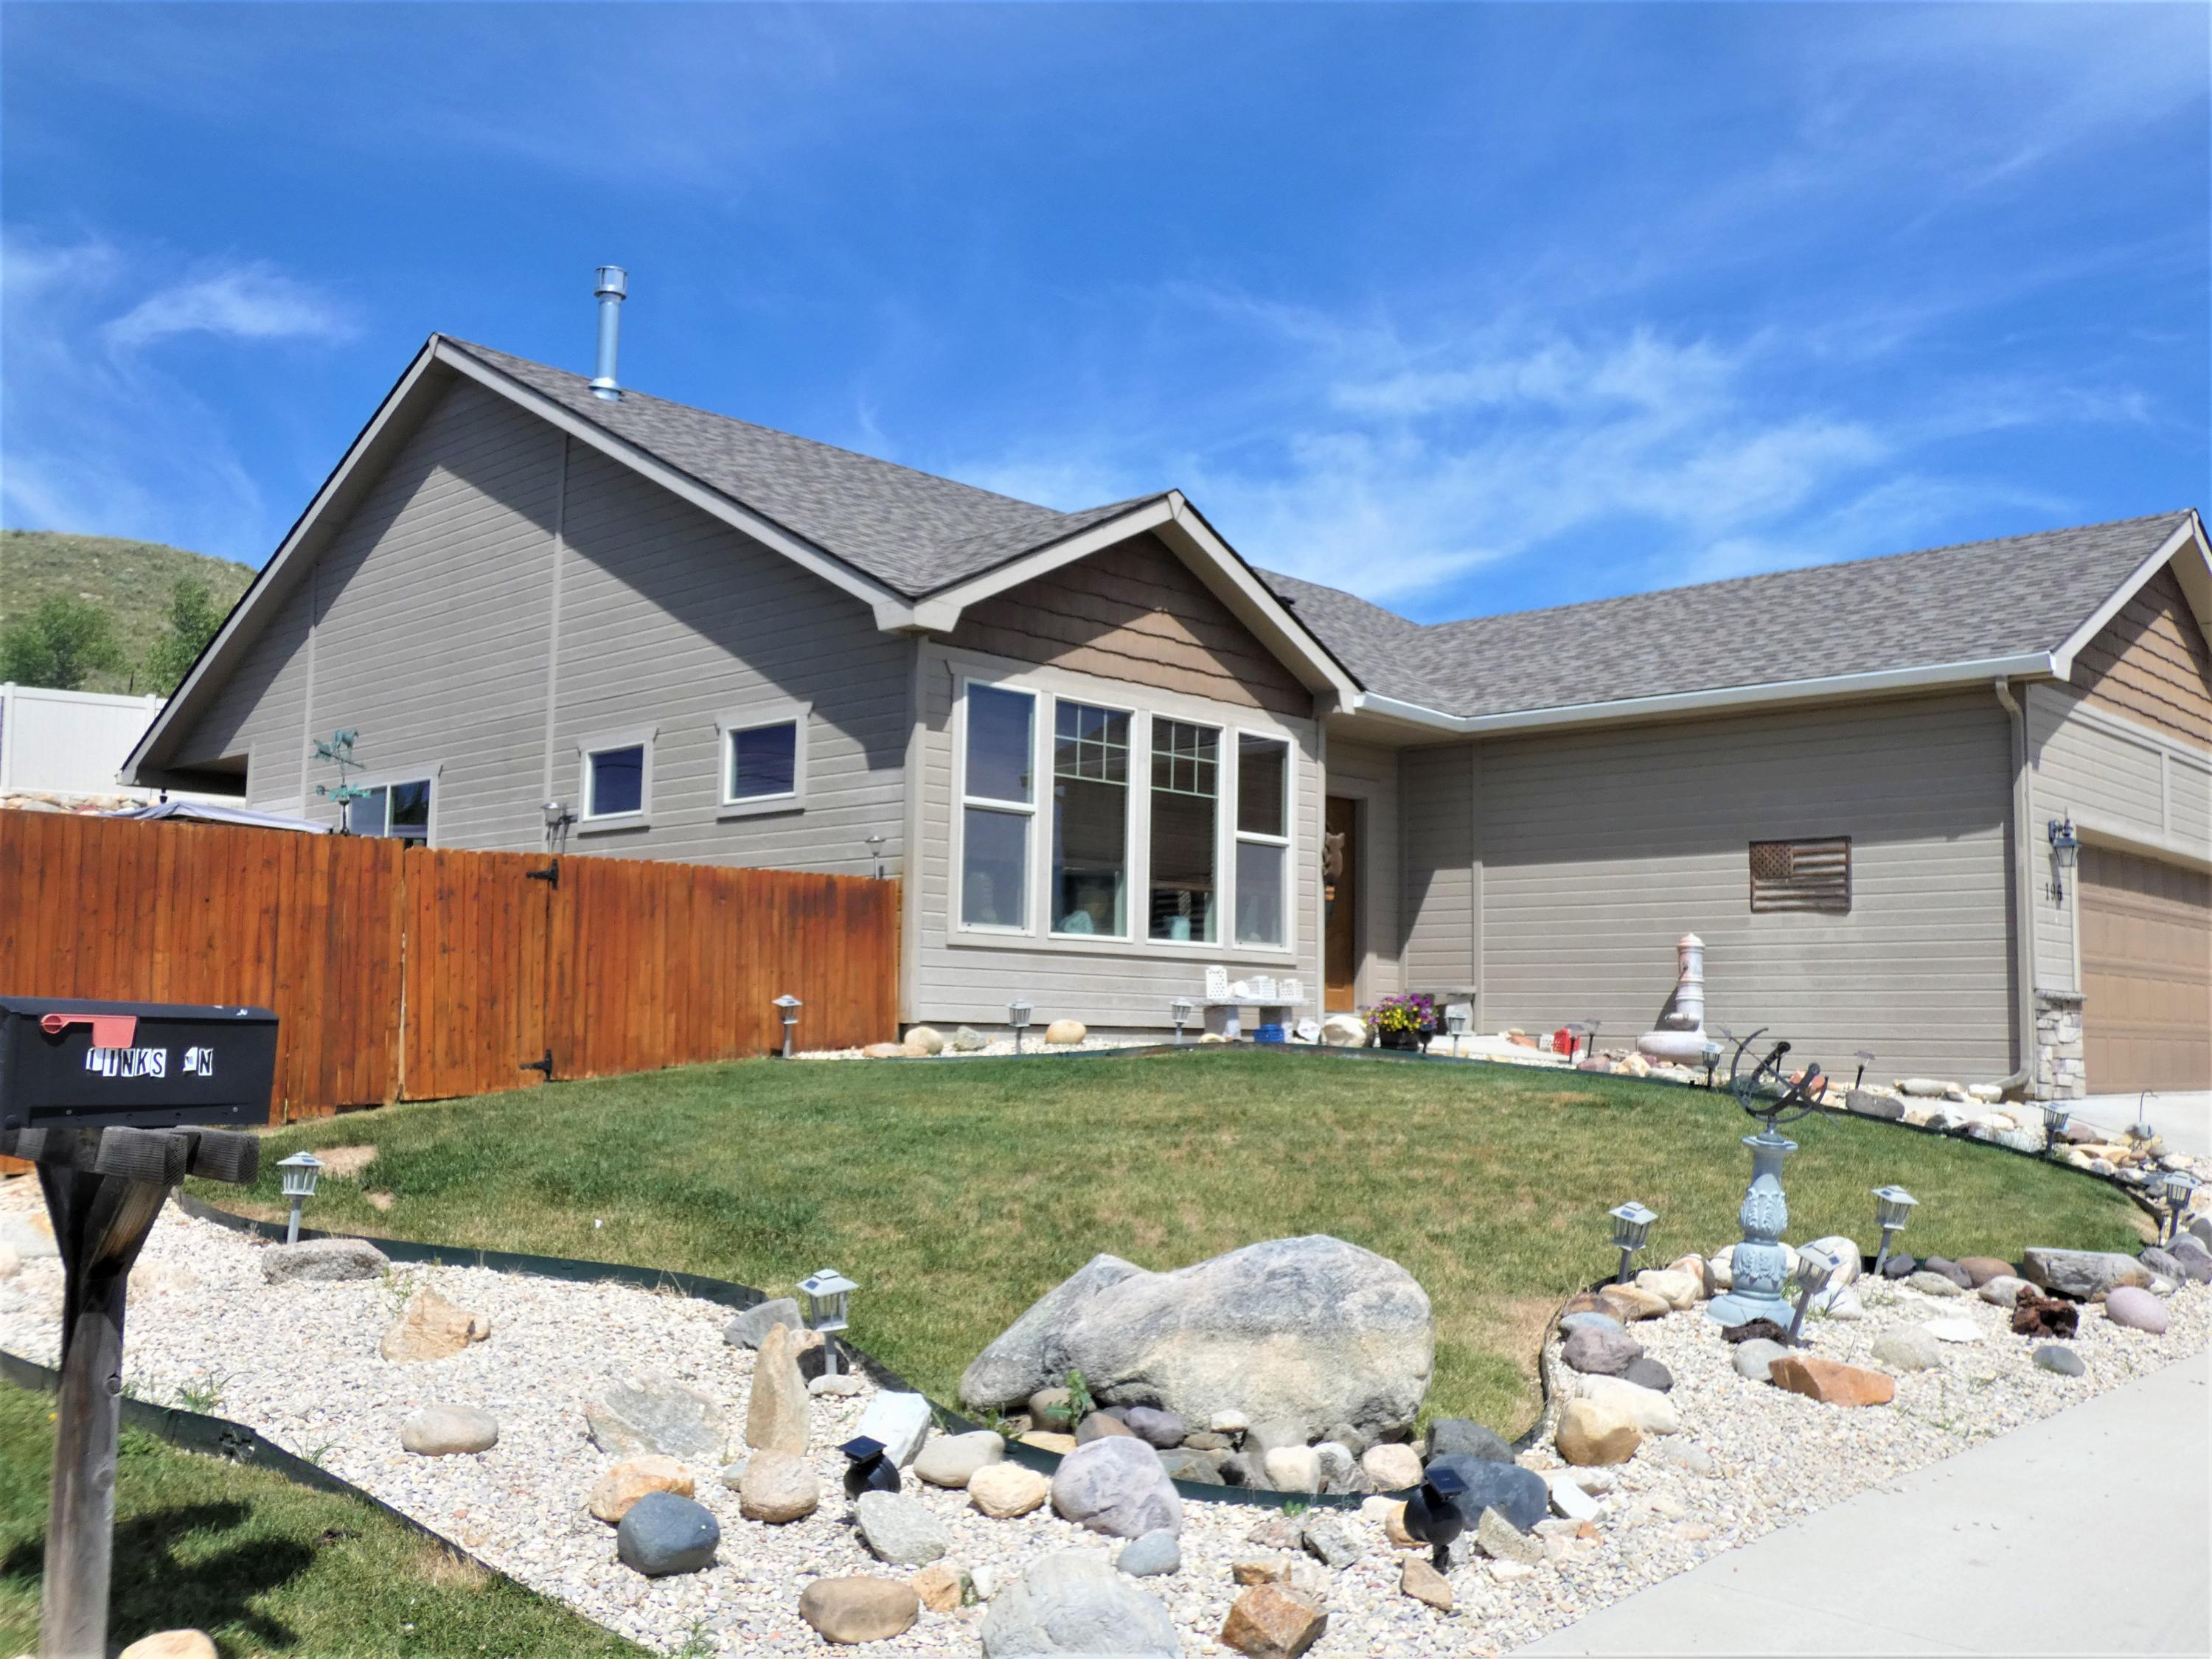 196 Links Lane, Buffalo, Wyoming 82834, 3 Bedrooms Bedrooms, ,2 BathroomsBathrooms,Residential,For Sale,Links,20-758